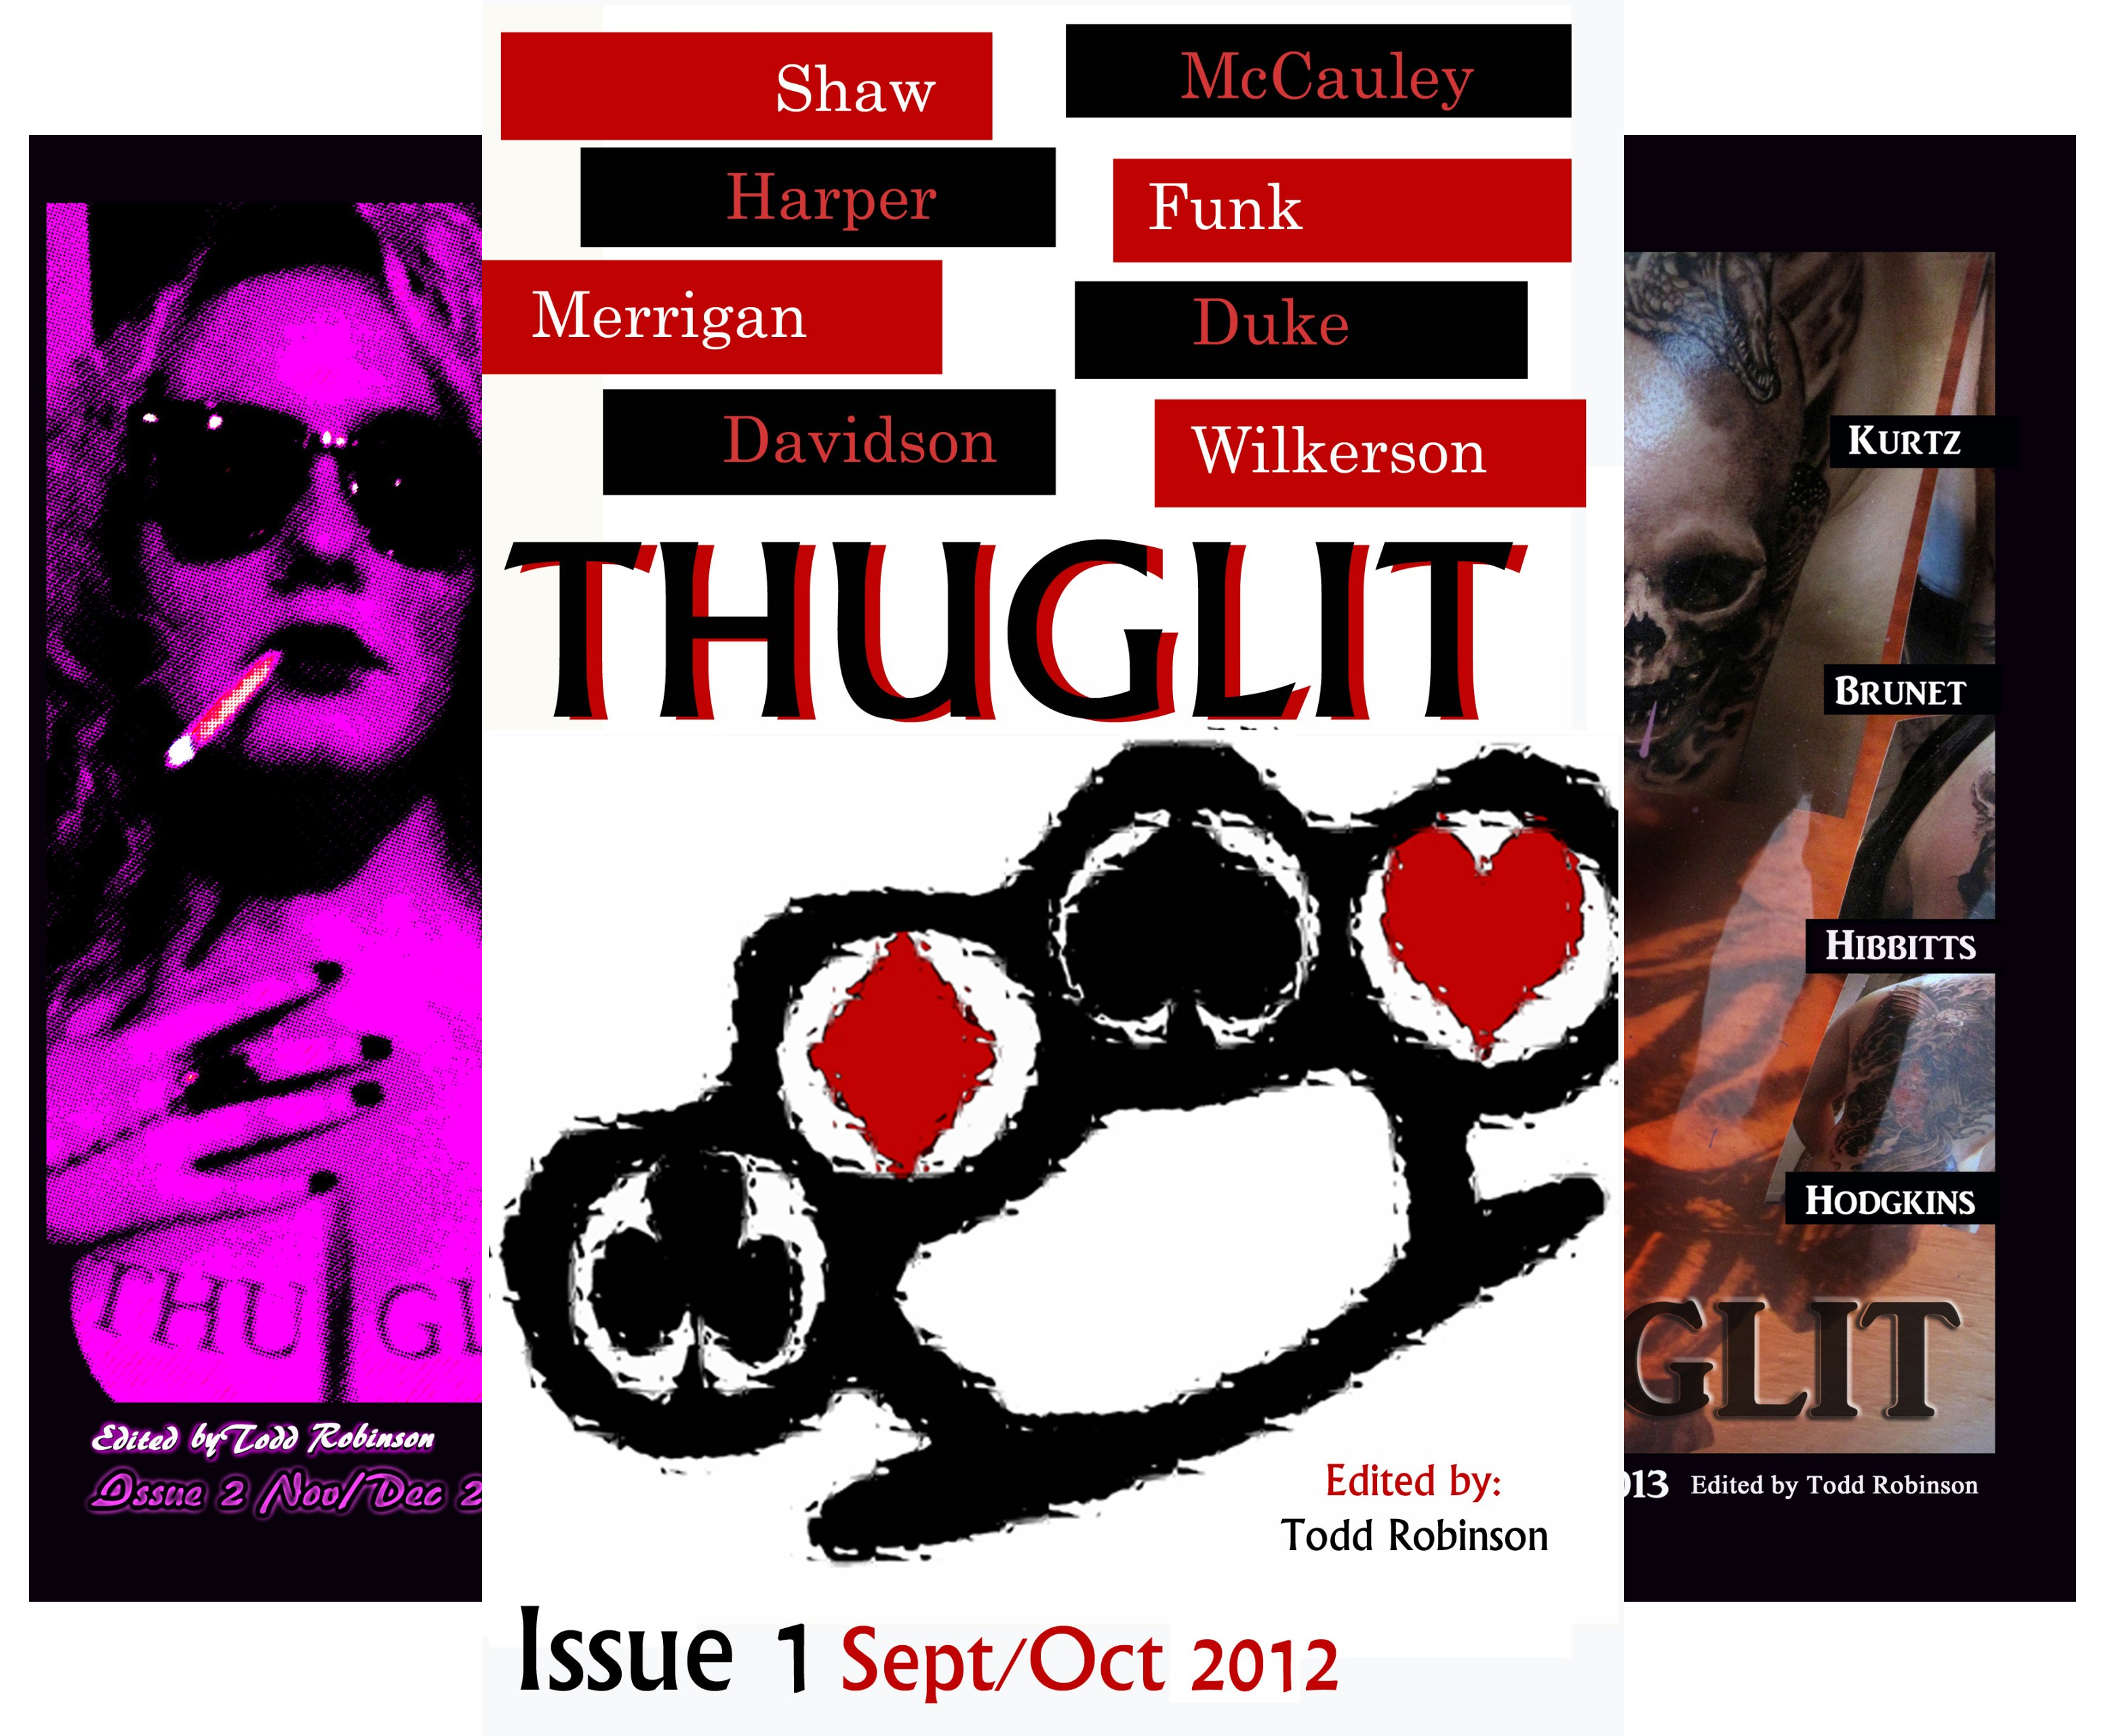 THUGLIT (14 Book Series)